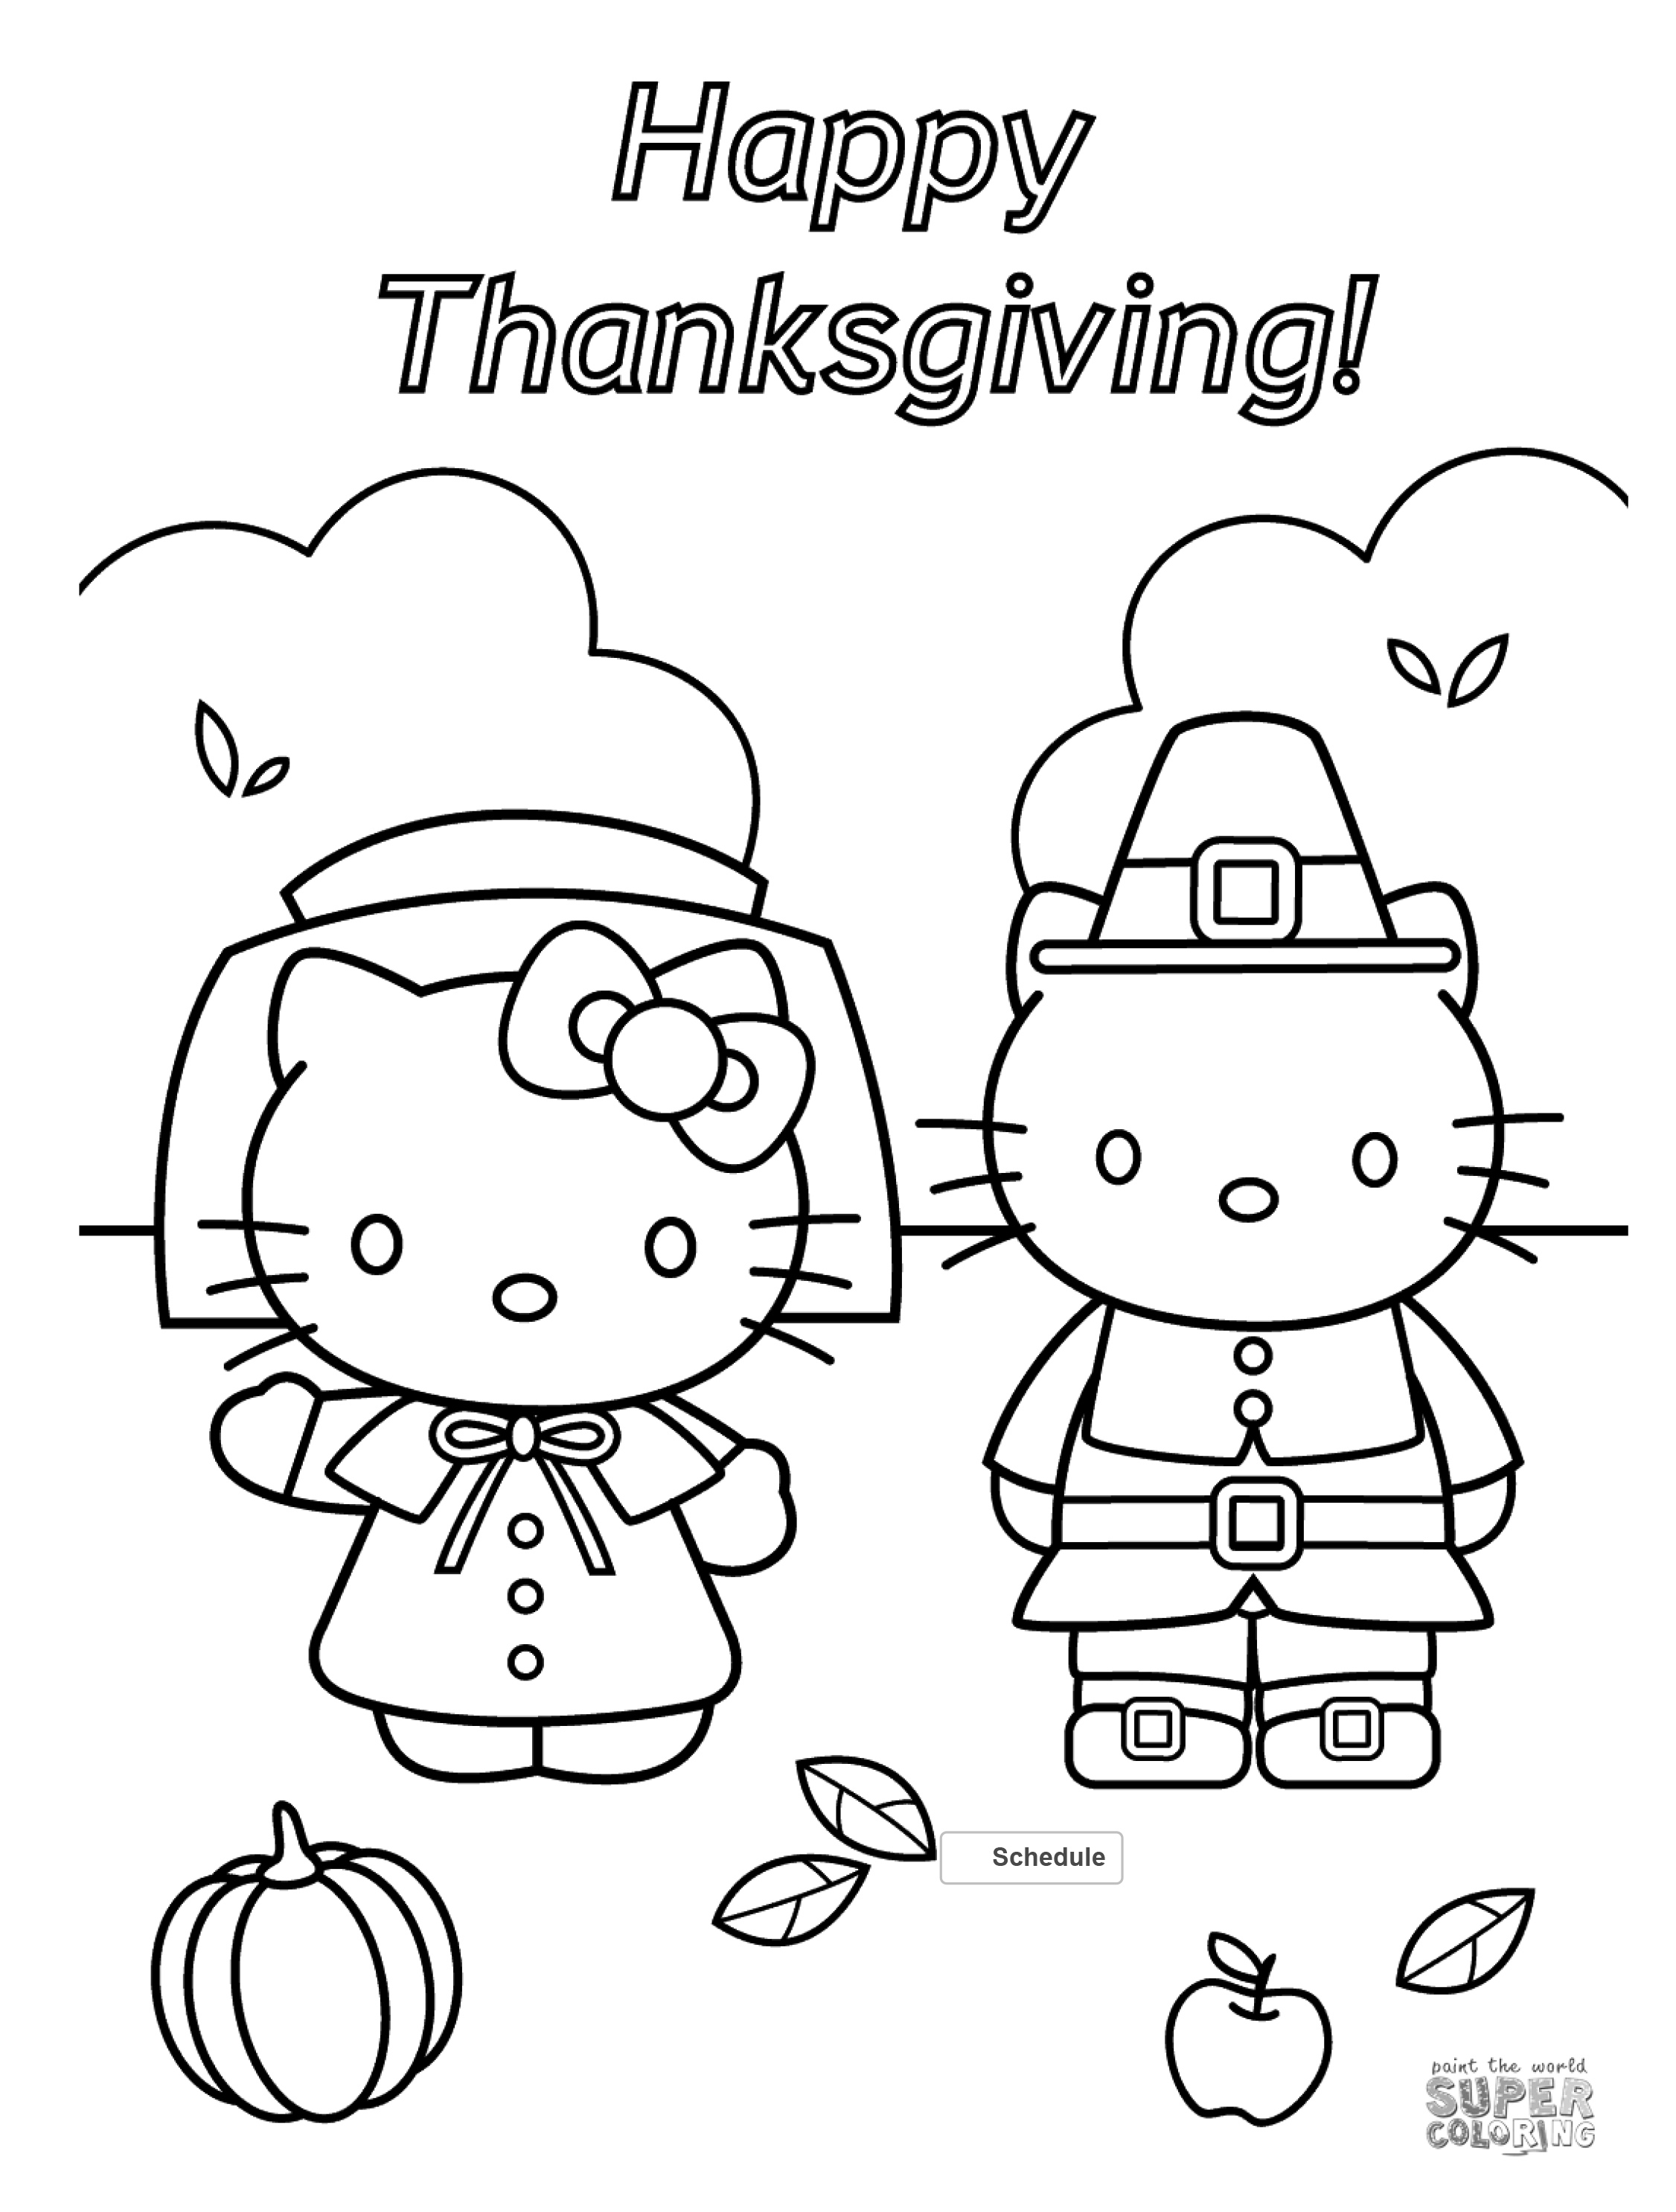 Free Thanksgiving Coloring Pages For Adults Kids Happiness Is Homemade